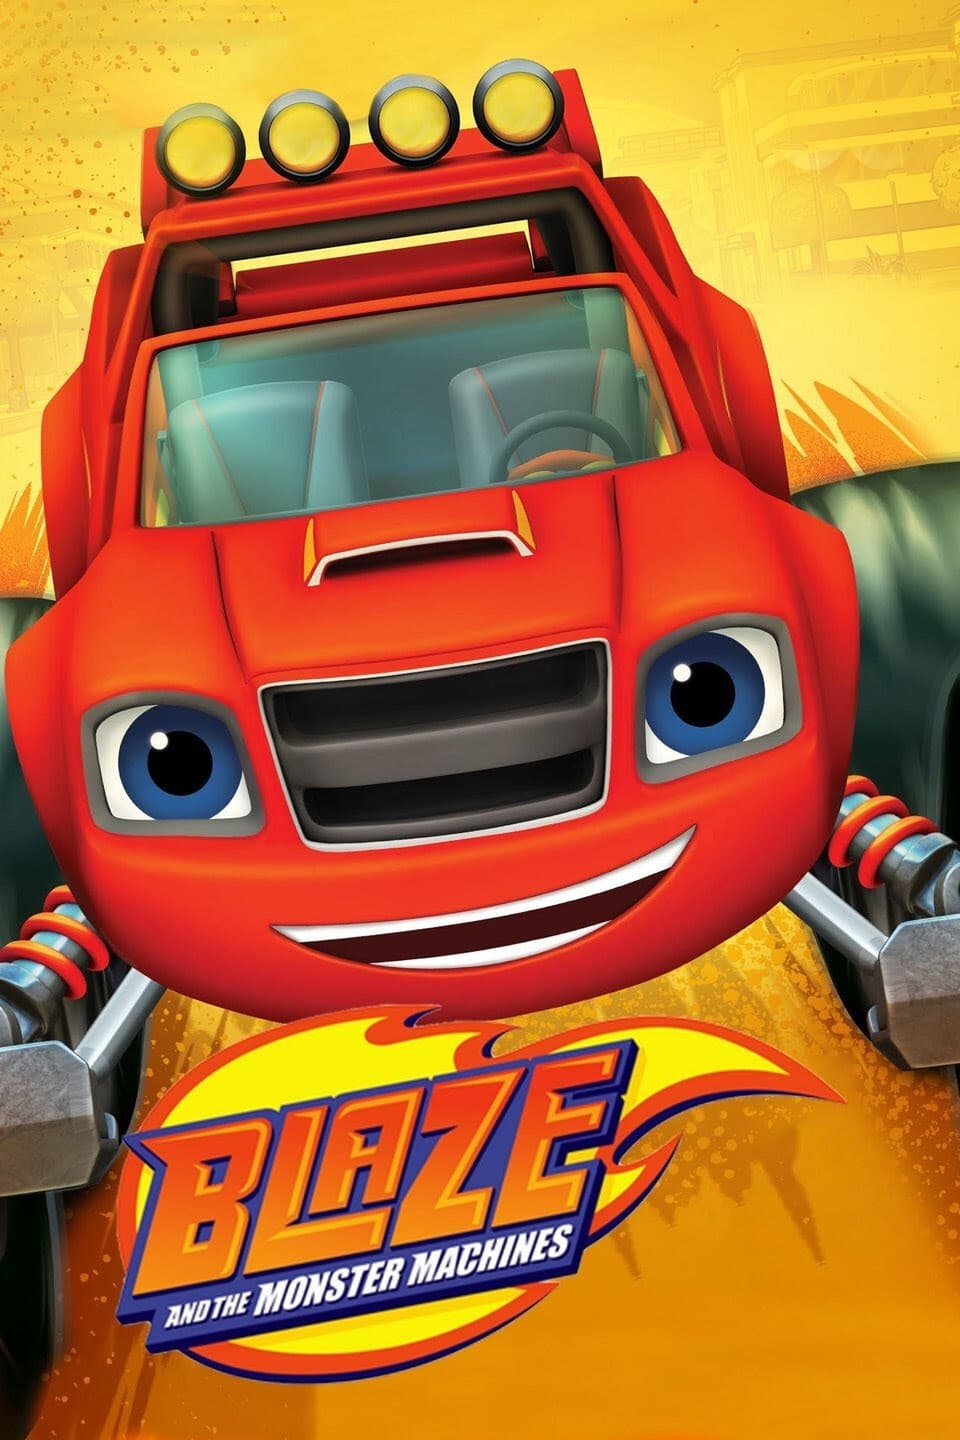 Blaze And The Monster Machines The Big Ant Venture : blaze, monster, machines, venture, Season, Blaze, Monster, Machines, (2014)